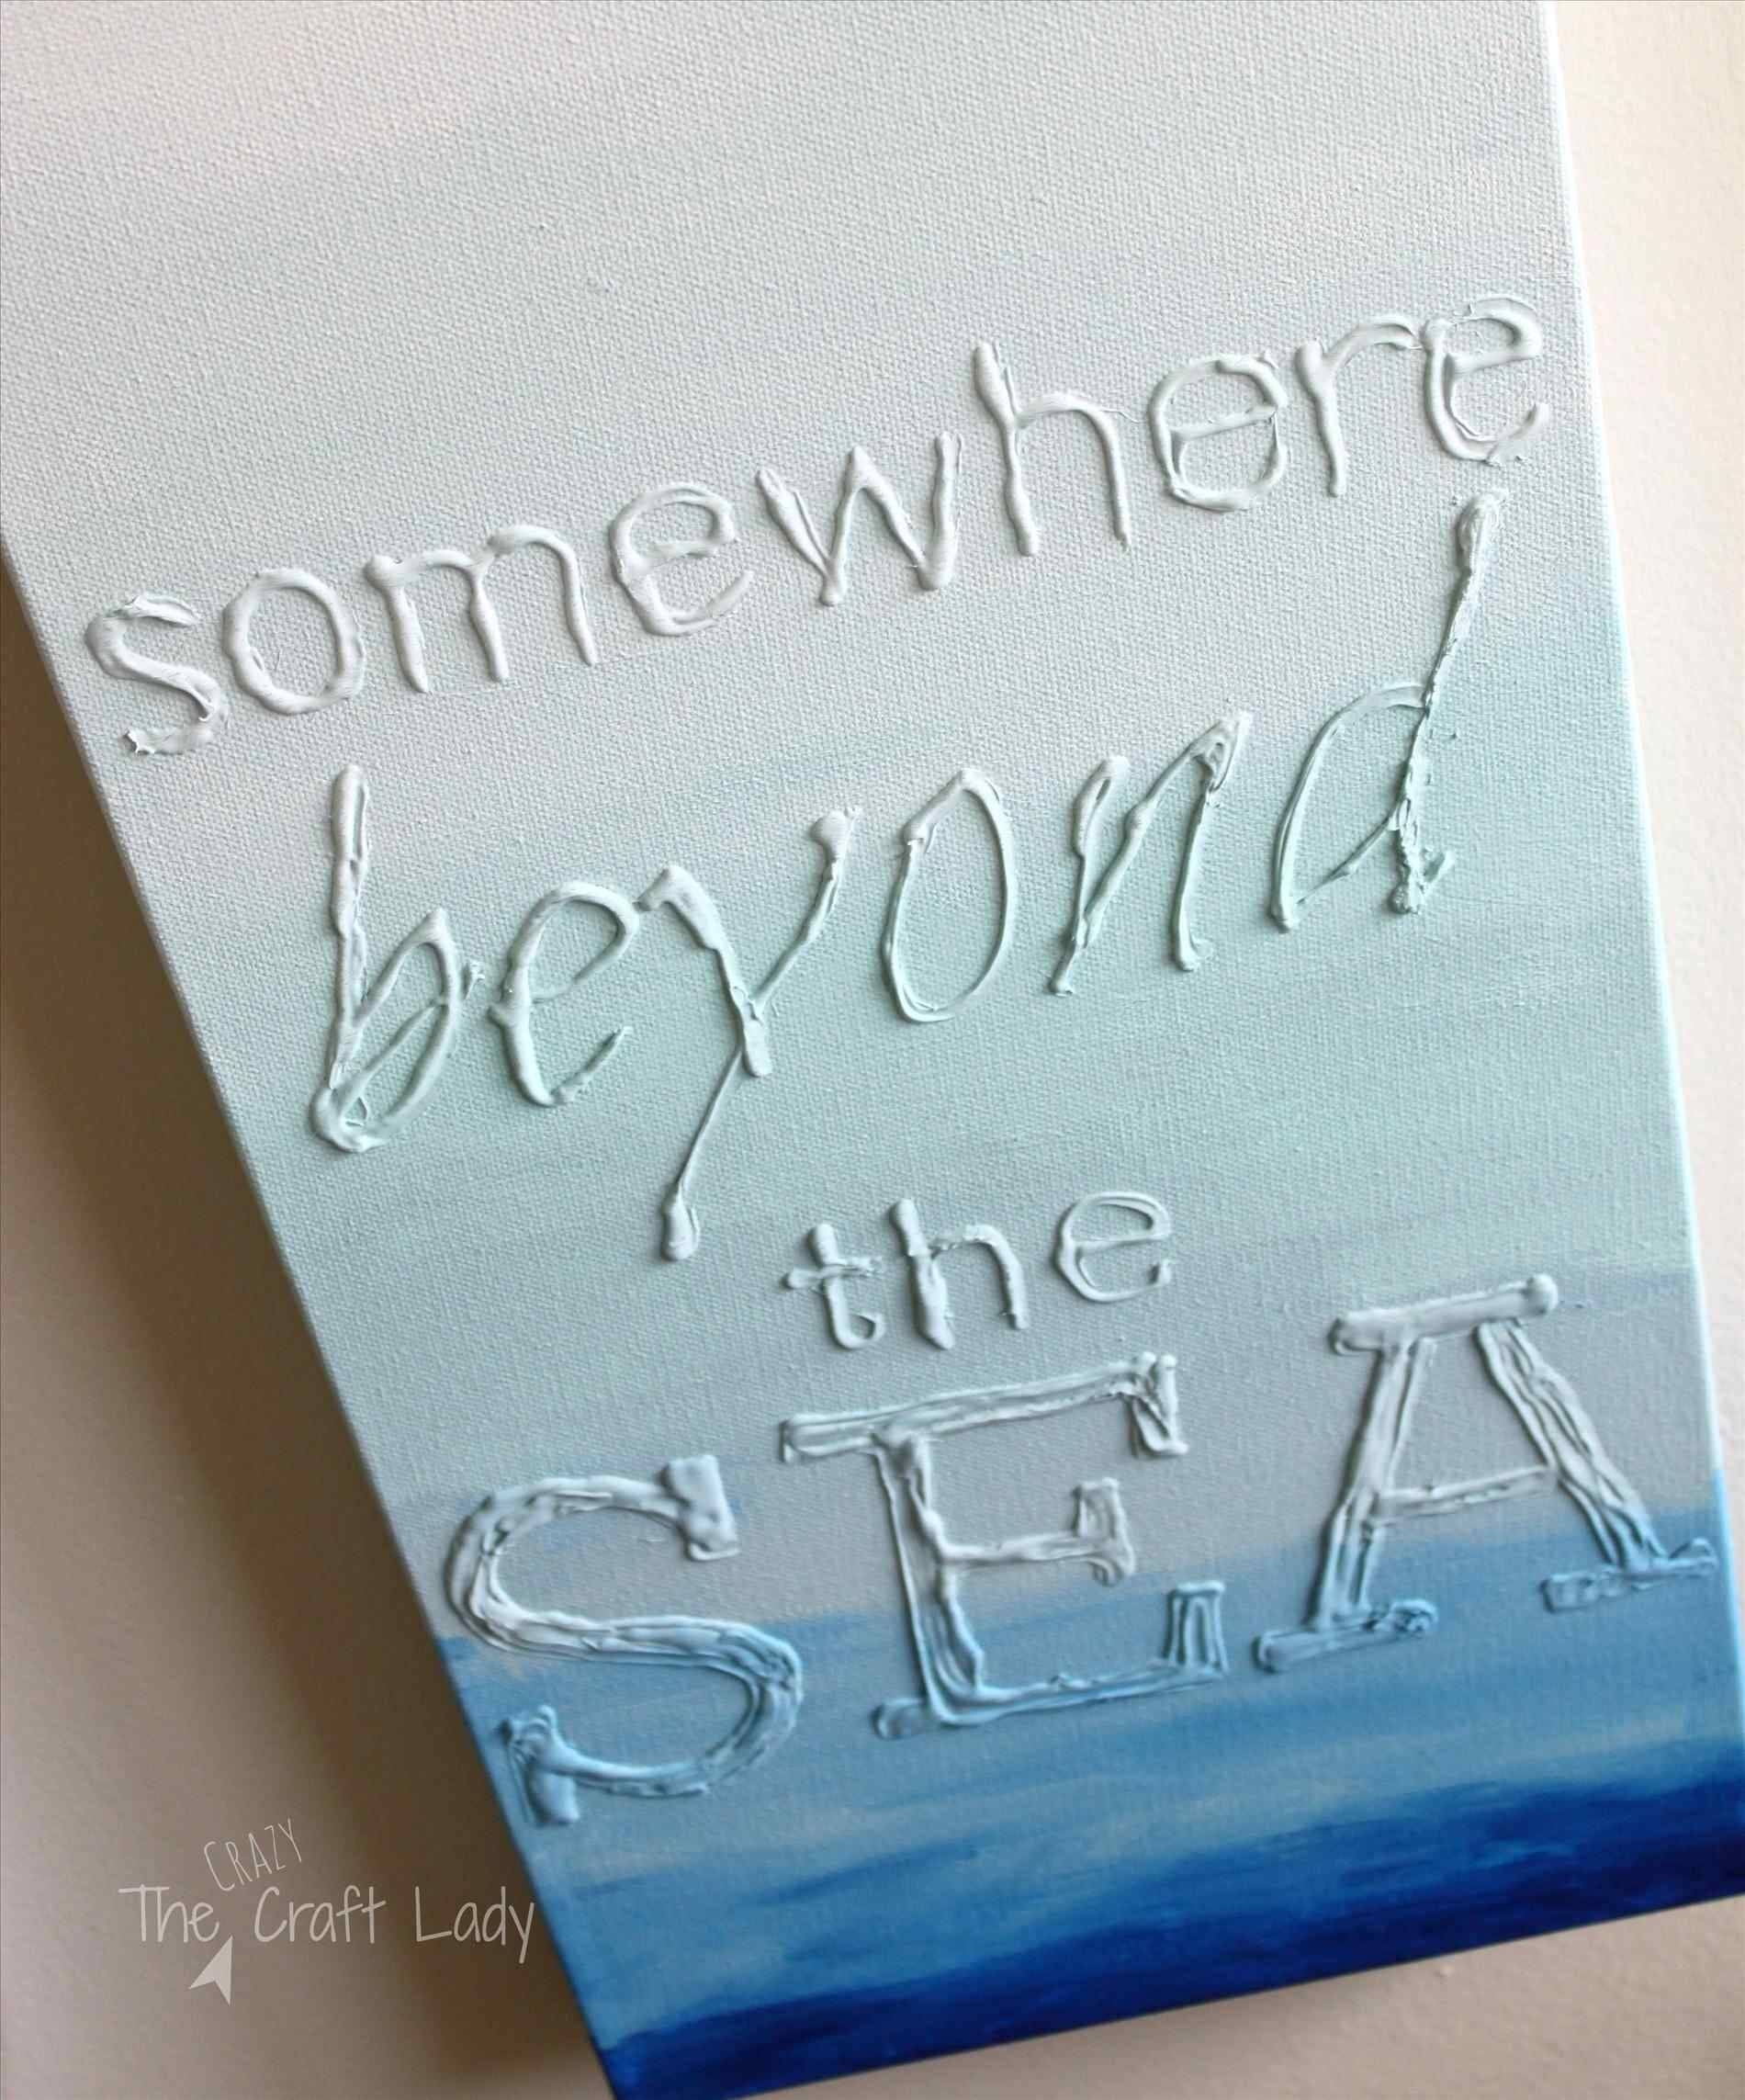 Quotes Diy Art Designs Awesome Diy Canvas Quote Youtube Diy Canvas Throughout Most Current Diy Canvas Wall Art Quotes (View 5 of 20)